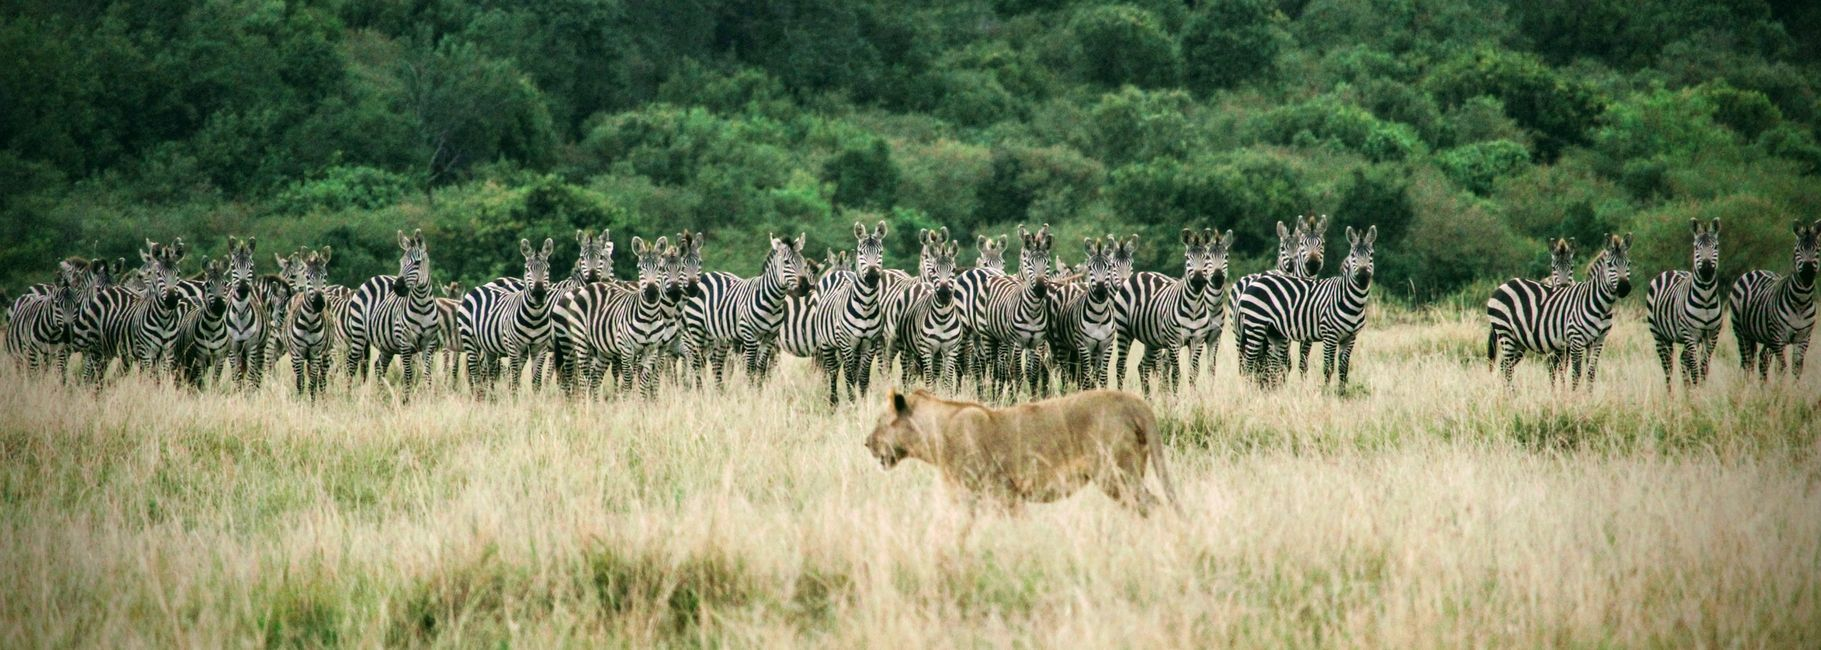 Lion, Zebras, Africa, Kenya, The Great Migration, Michela Solinas, The Travelers Blueprint, Travel